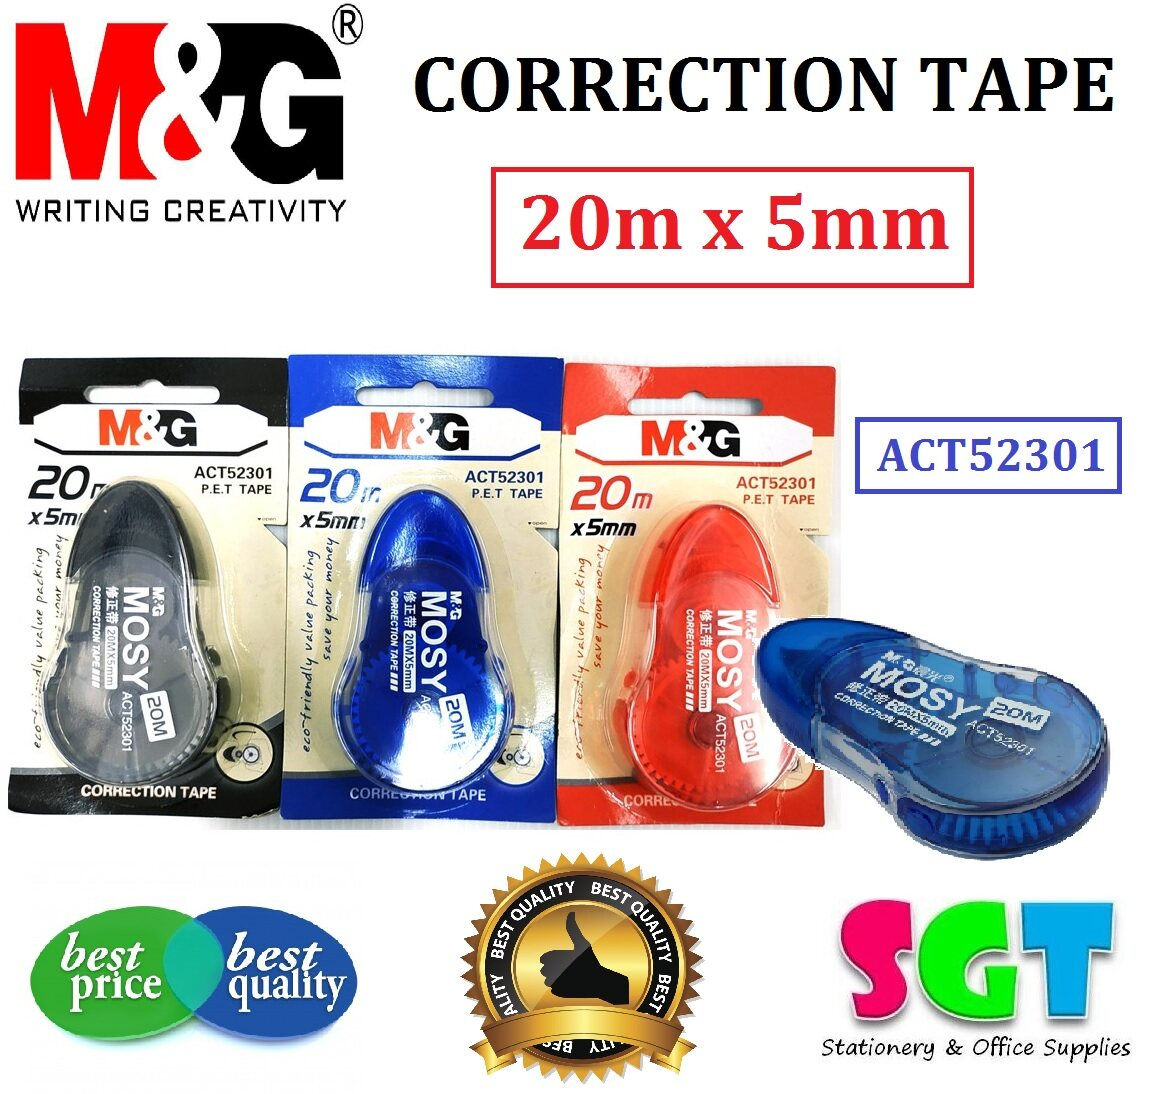 M&G Correction Tape 20m x 5mm - ACT52301 ( 1 PC Only )